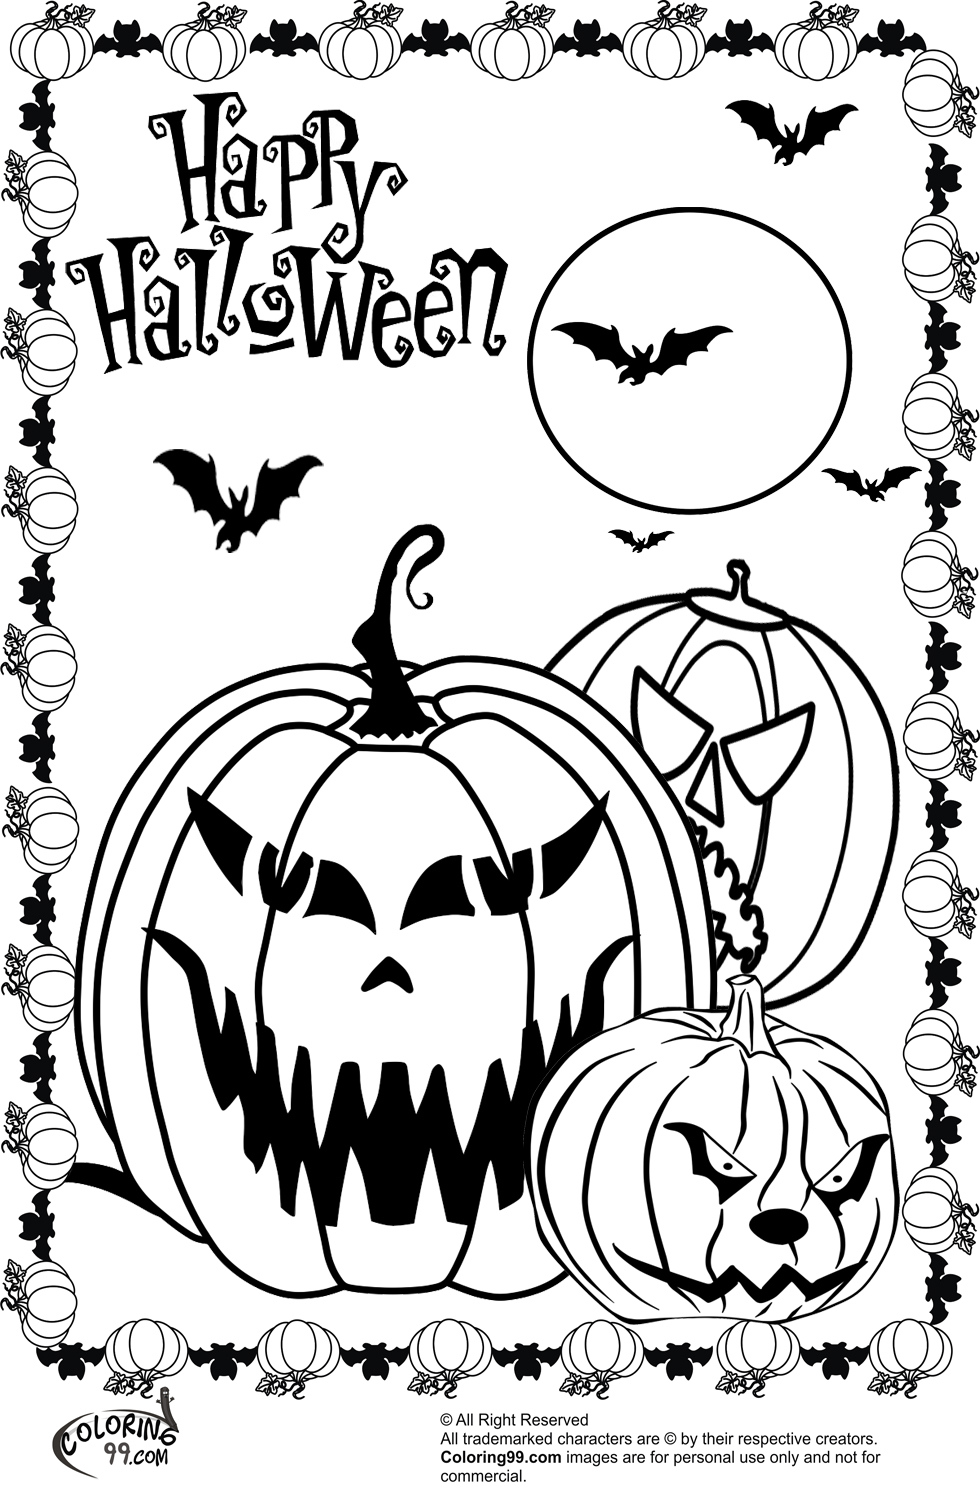 halloween coloring pages online monster high halloween coloring pages festival collections halloween online pages coloring